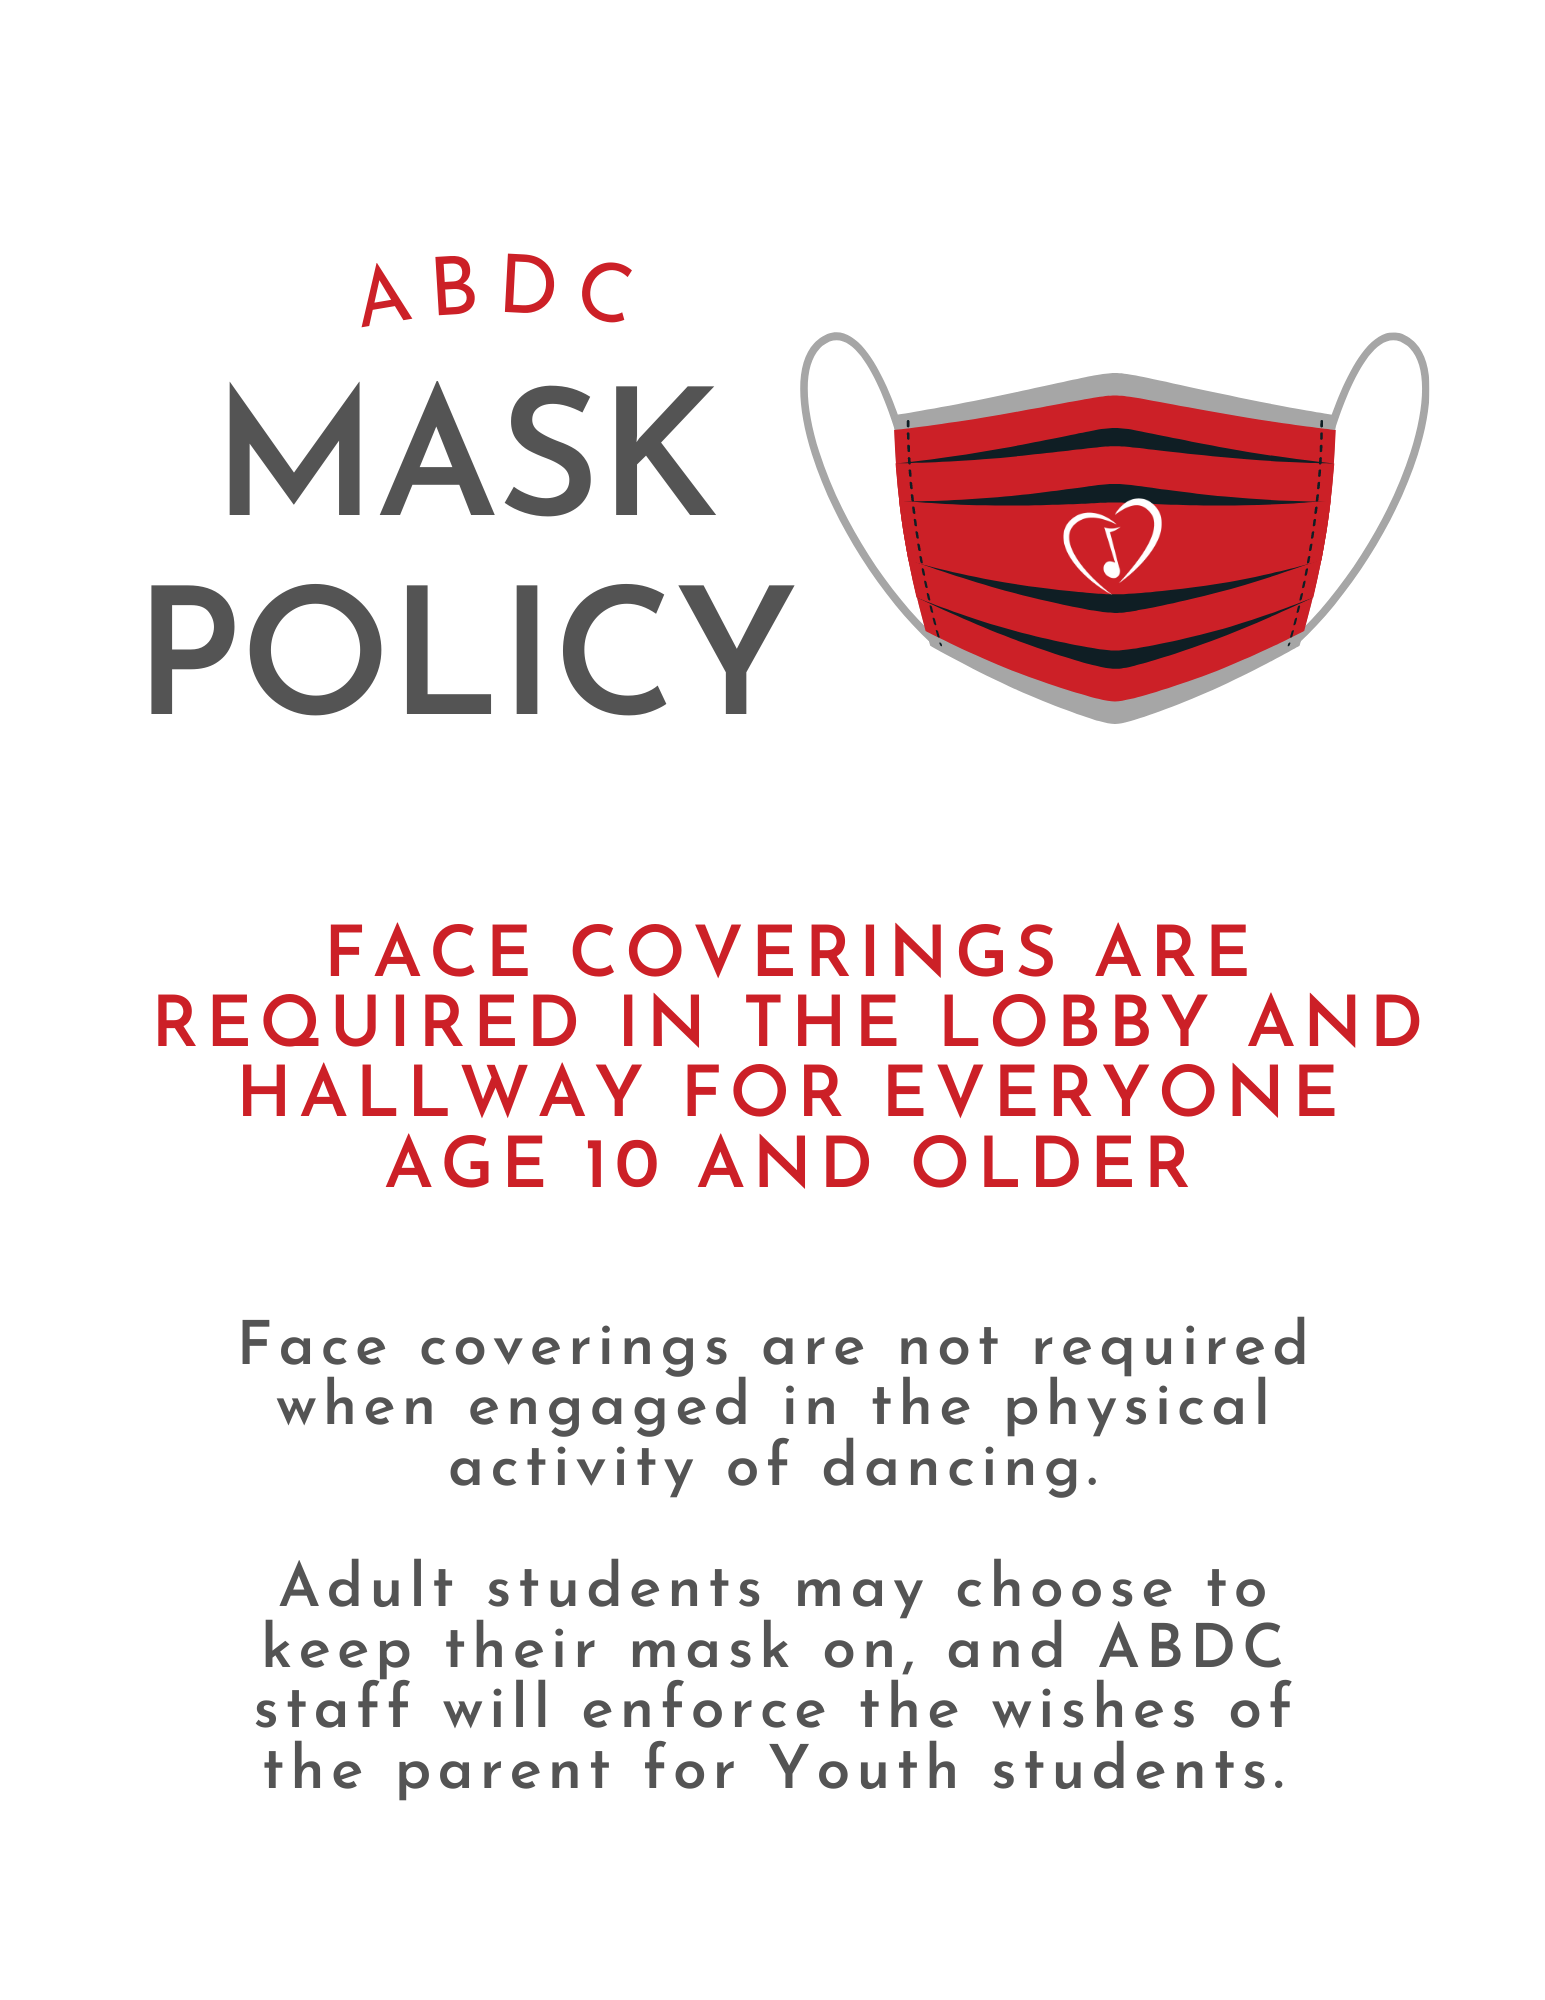 abdc mask policy